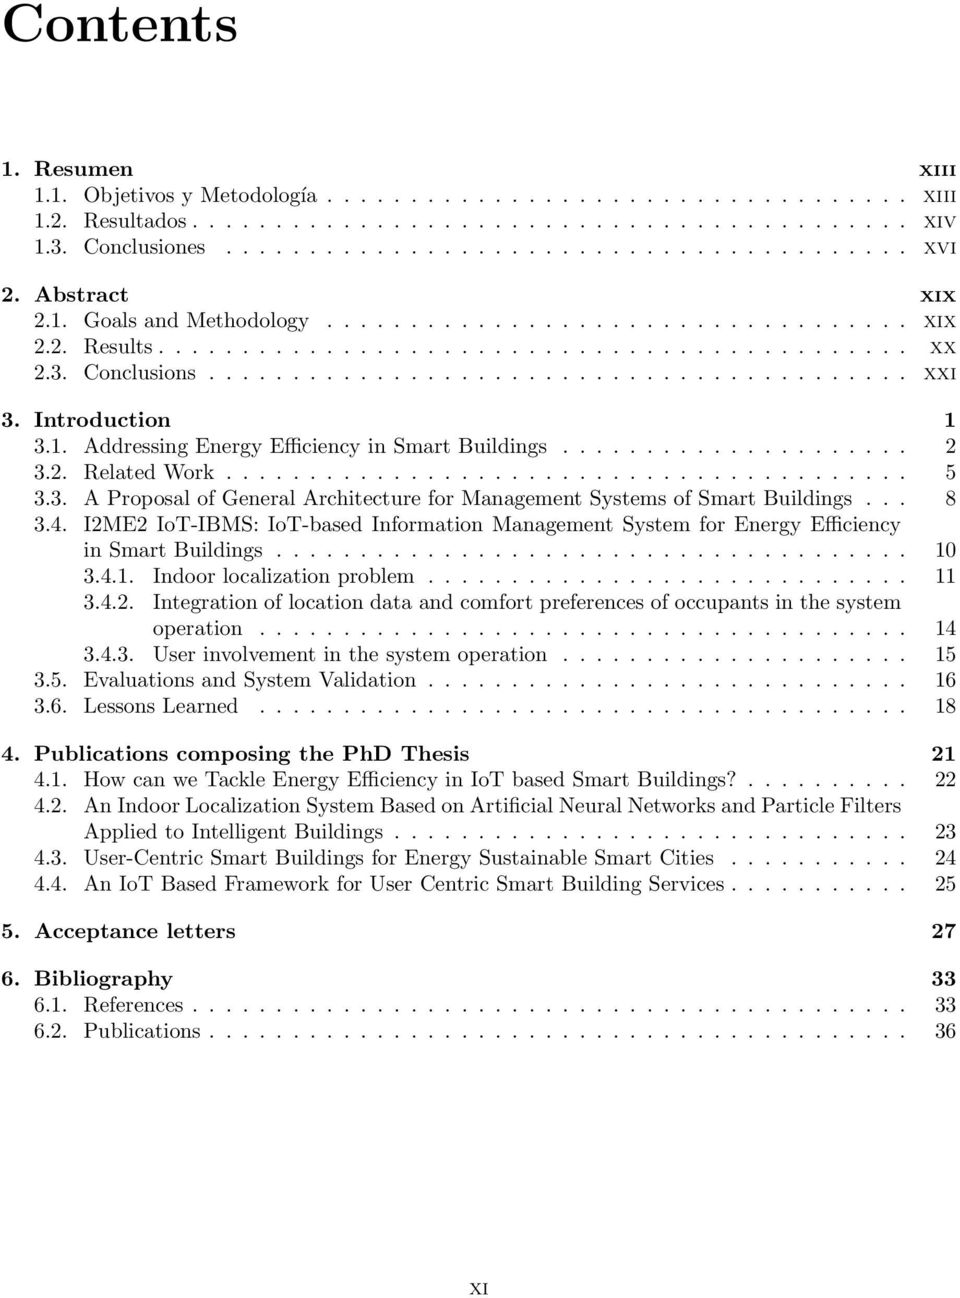 Introduction 1 3.1. Addressing Energy Efficiency in Smart Buildings..................... 2 3.2. Related Work......................................... 5 3.3. A Proposal of General Architecture for Management Systems of Smart Buildings.